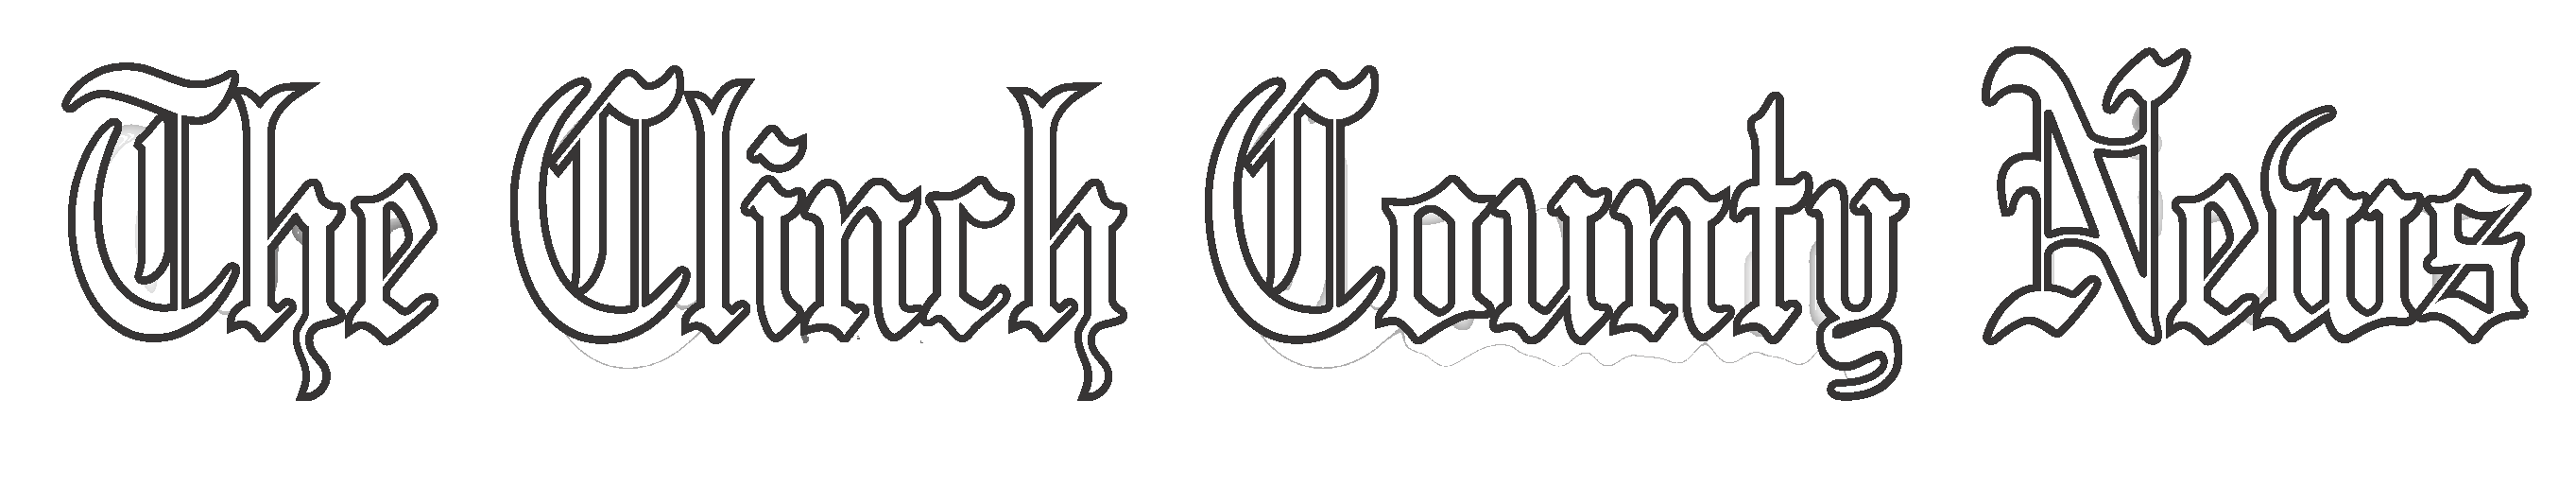 The Clinch County News